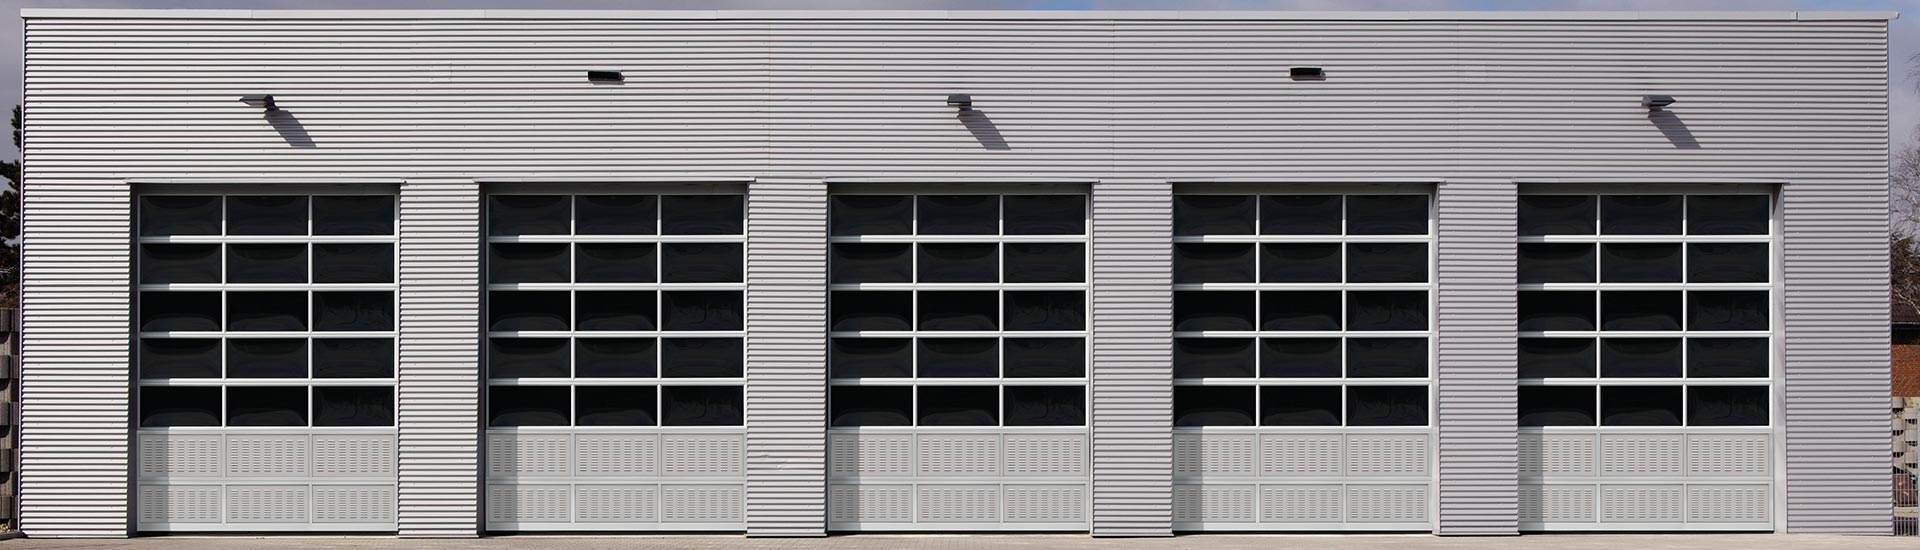 Residential U0026 Commercial Roll Up Garage Doors, Installation, Repair In  Texas.